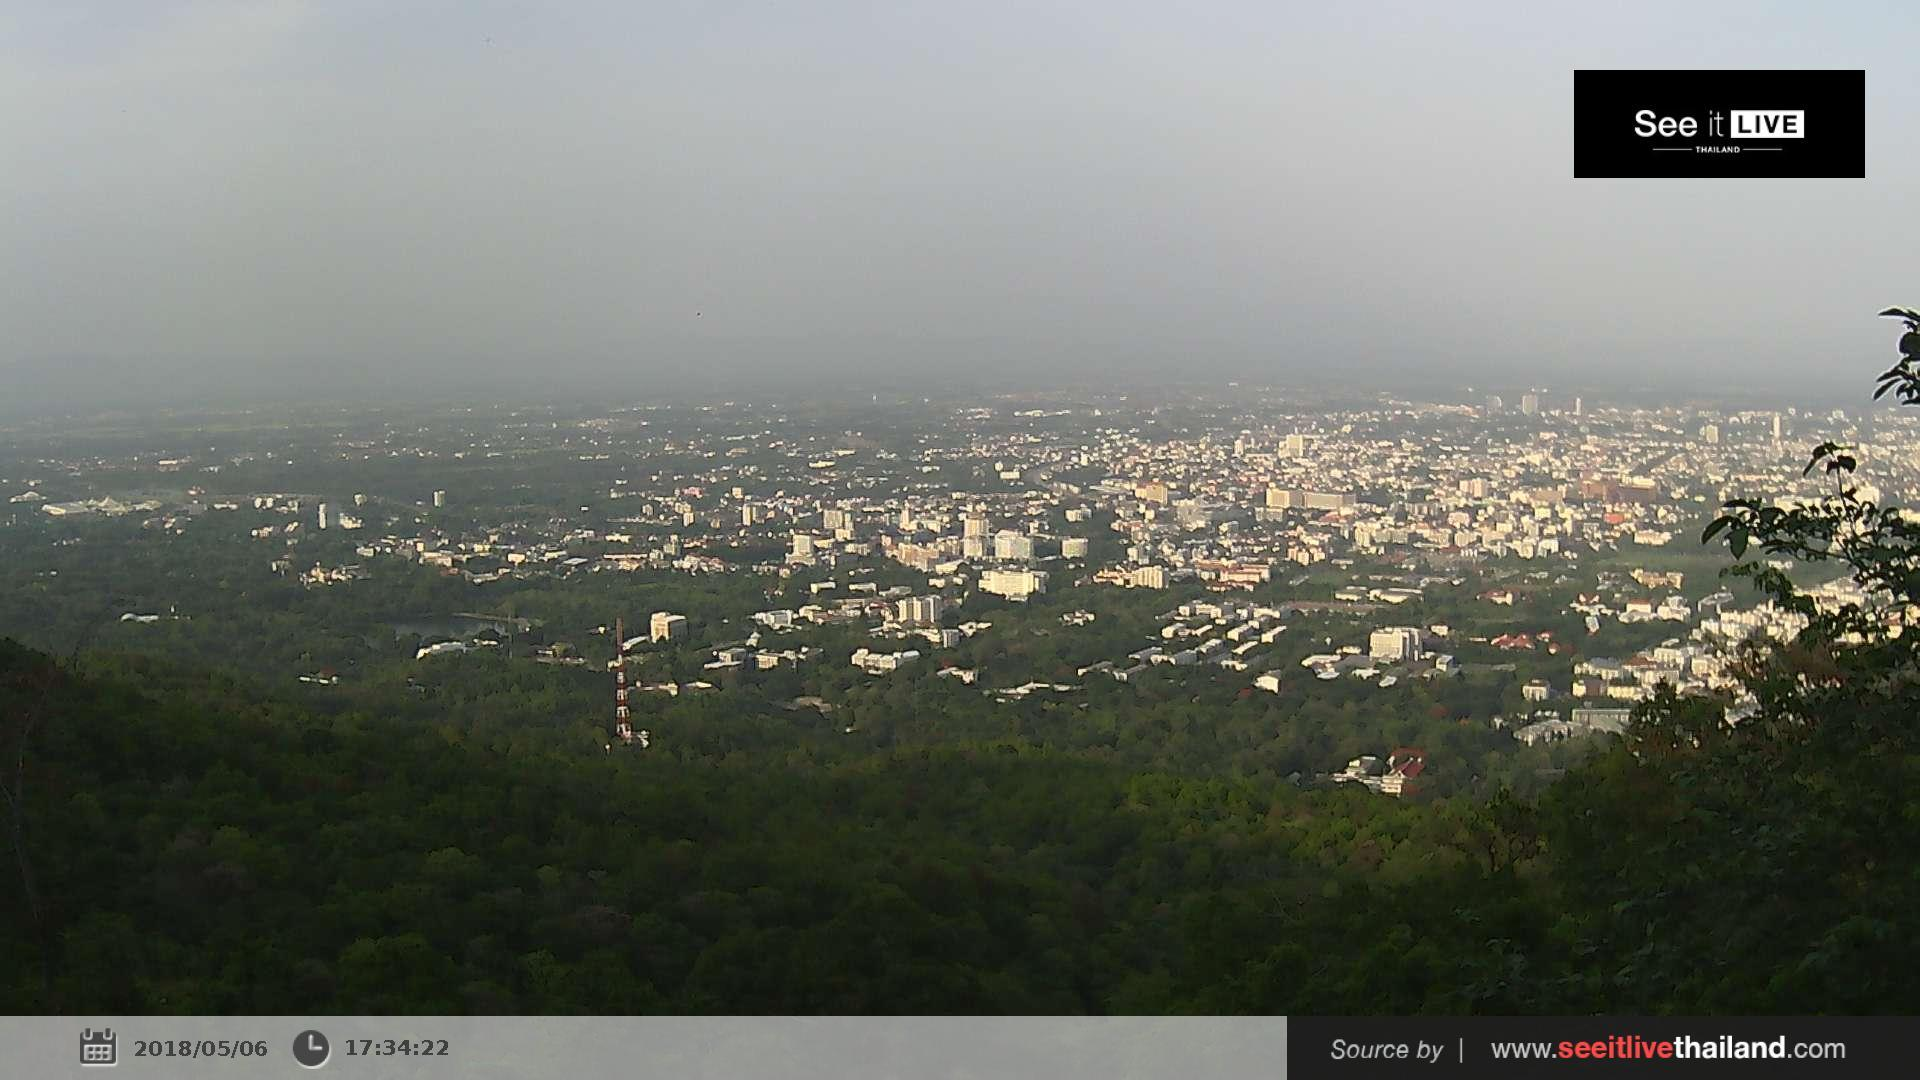 Webcam บ้านเชิงดอย: National Park Doi Suthep Pui − View P